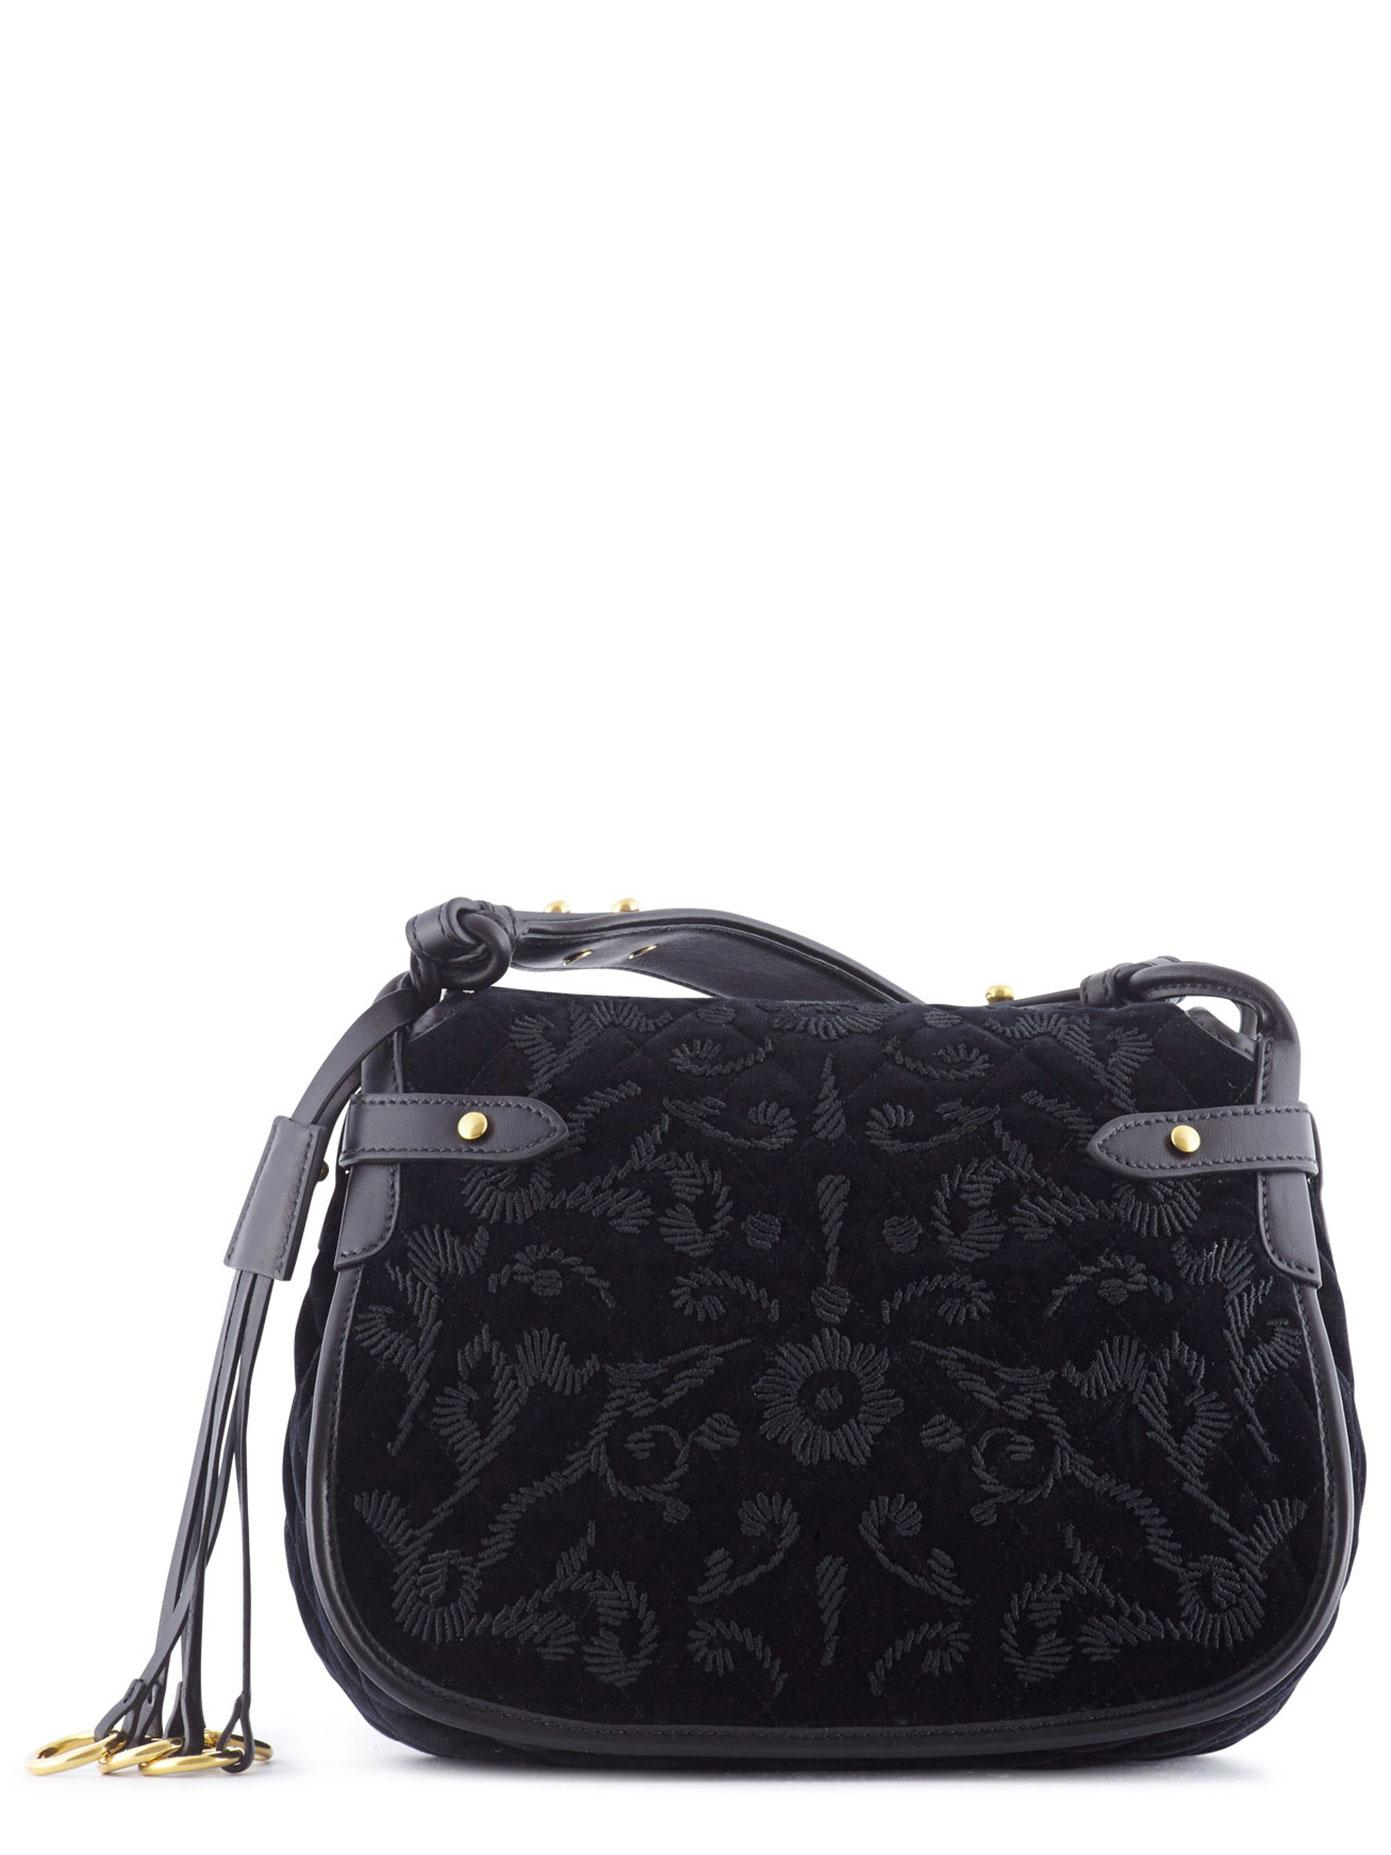 902d44b84fb4 Lyst - Prada Corsaire Embroidered Velvet And Leather in Black